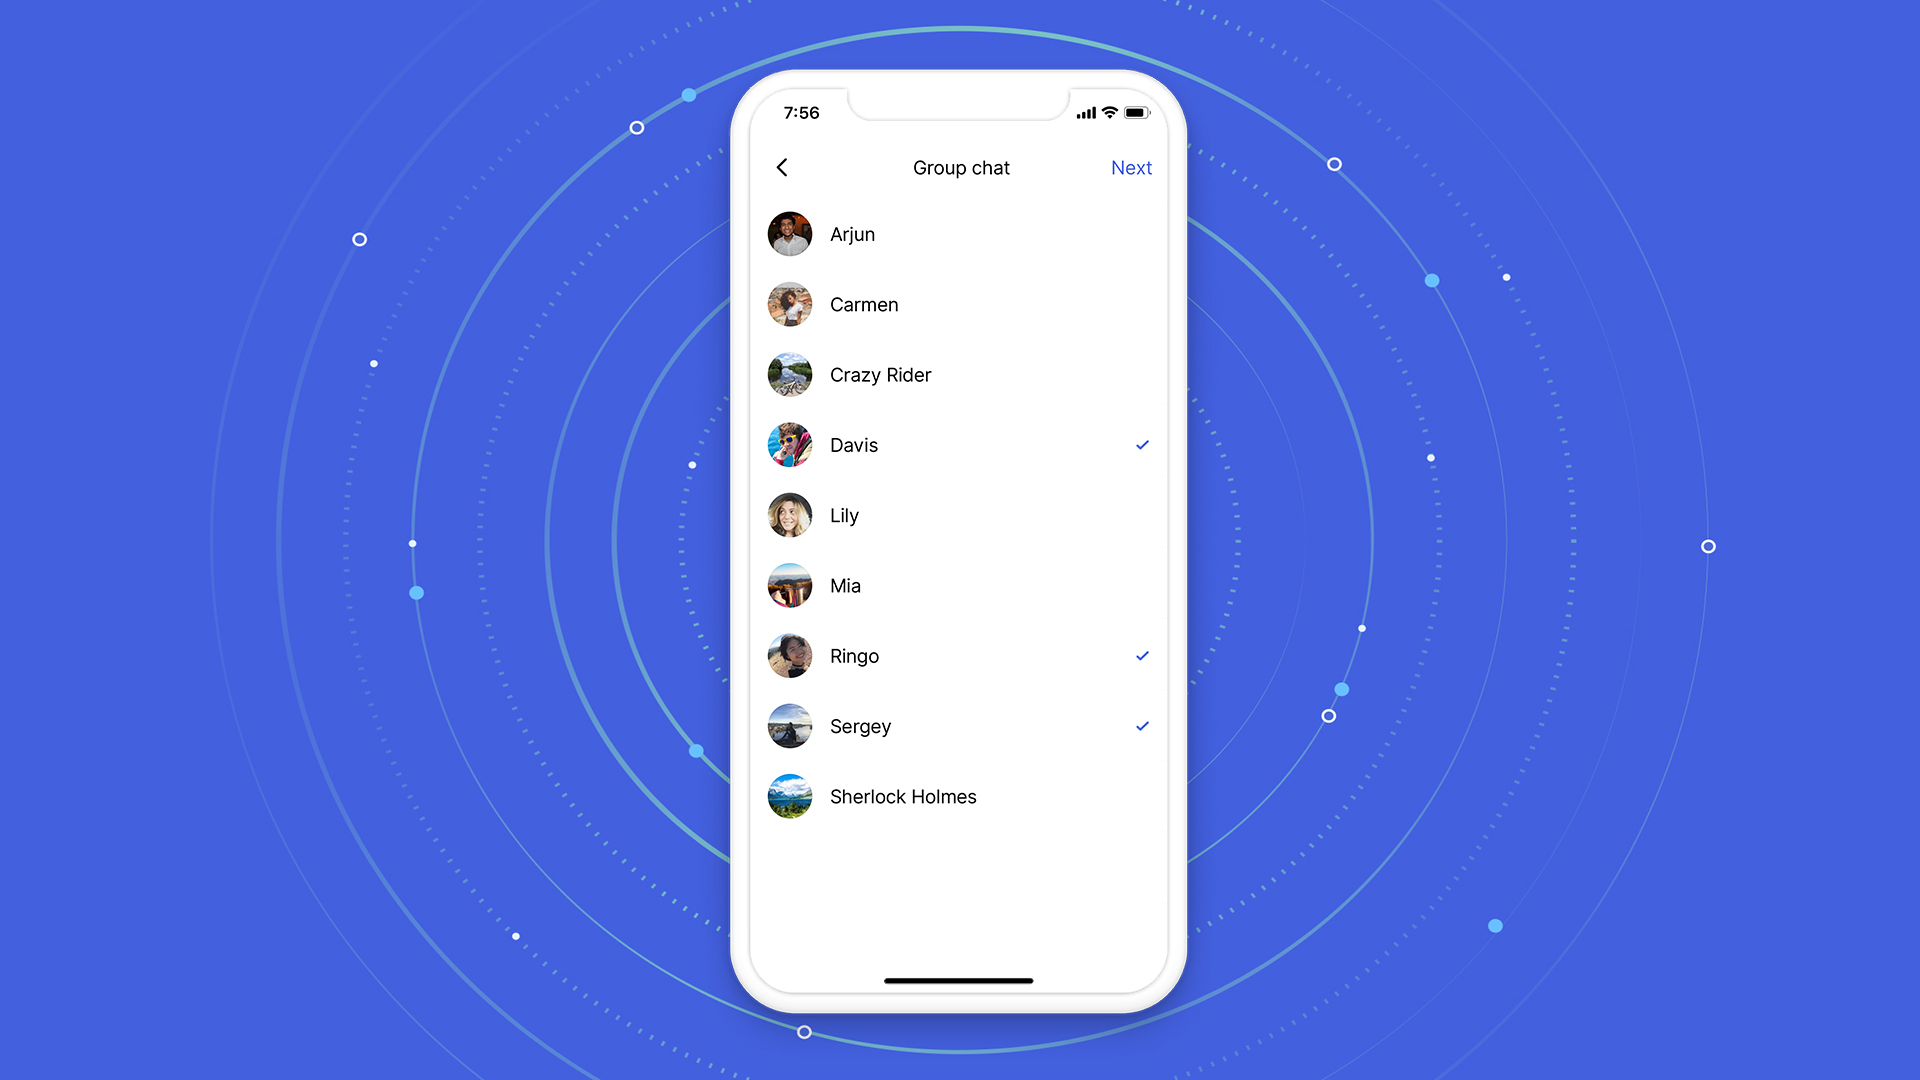 v0.9.32 Release - Private Group Chats